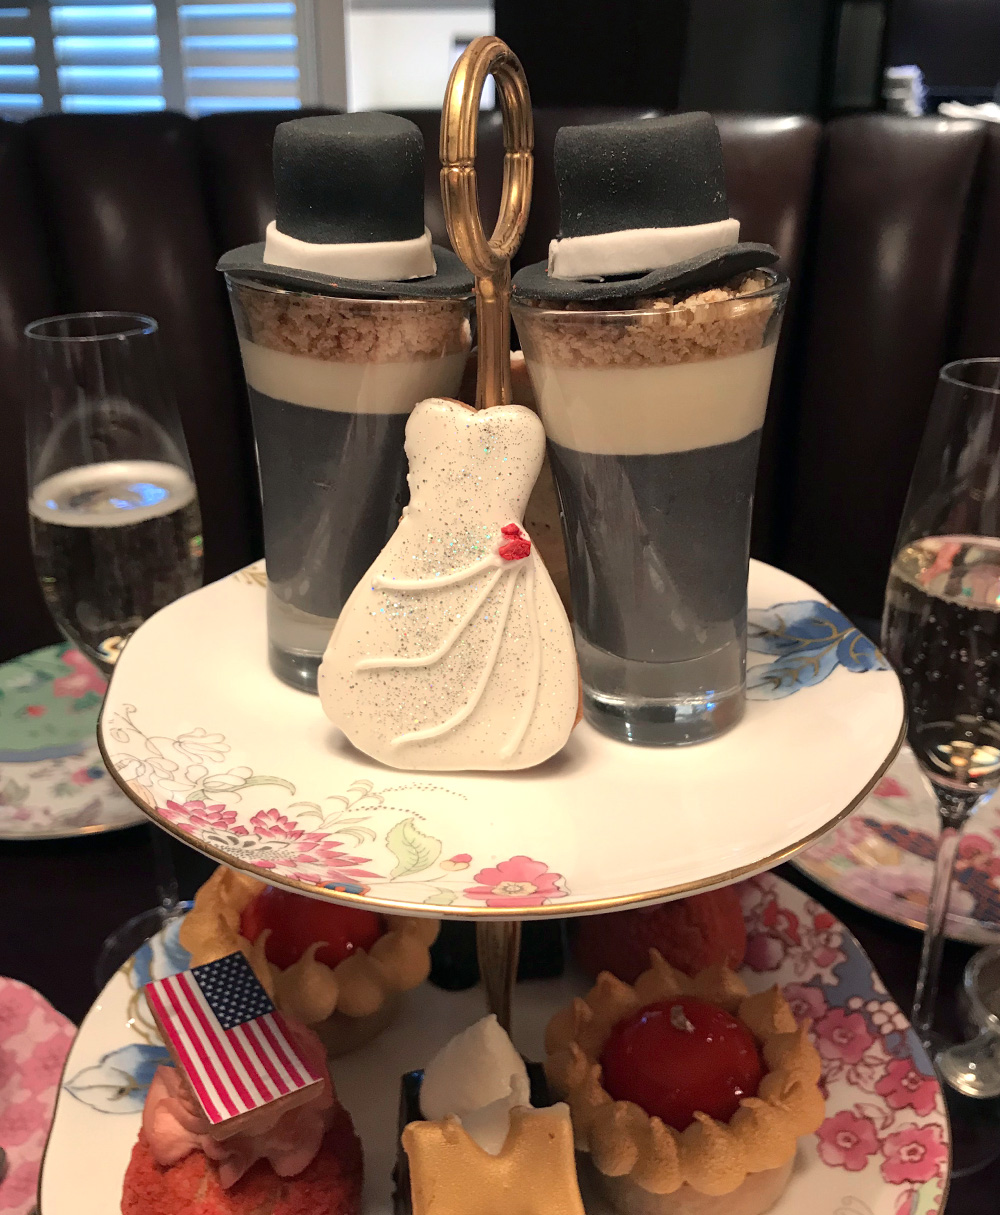 Royal Wedding Afternoon Tea hosted by The Arch London